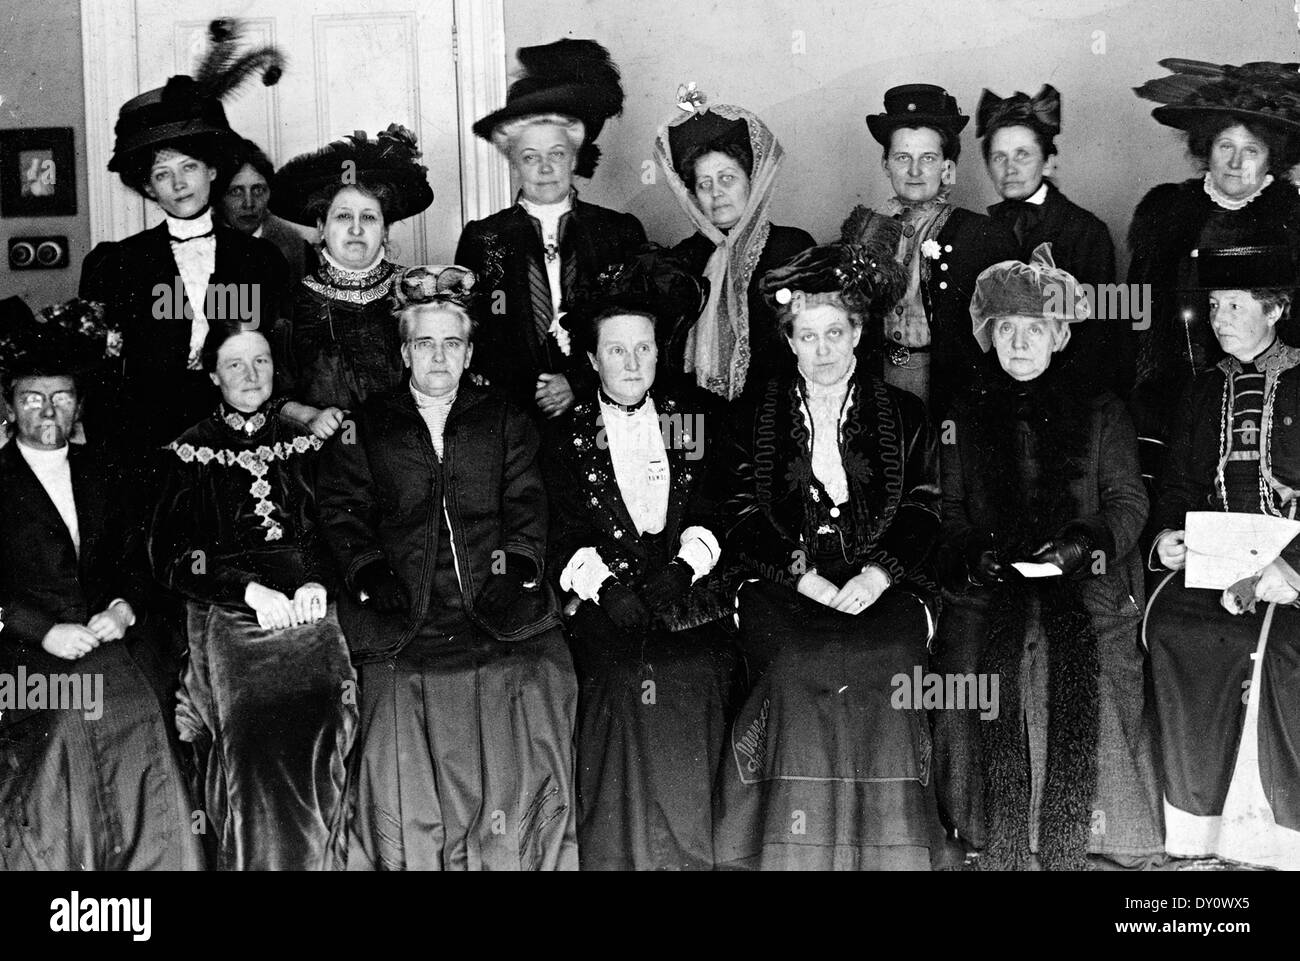 SUFFRAGE ALLIANCE CONGRESS in London in April 1909 with their President Millicent Fawcett seated centre. - Stock Image